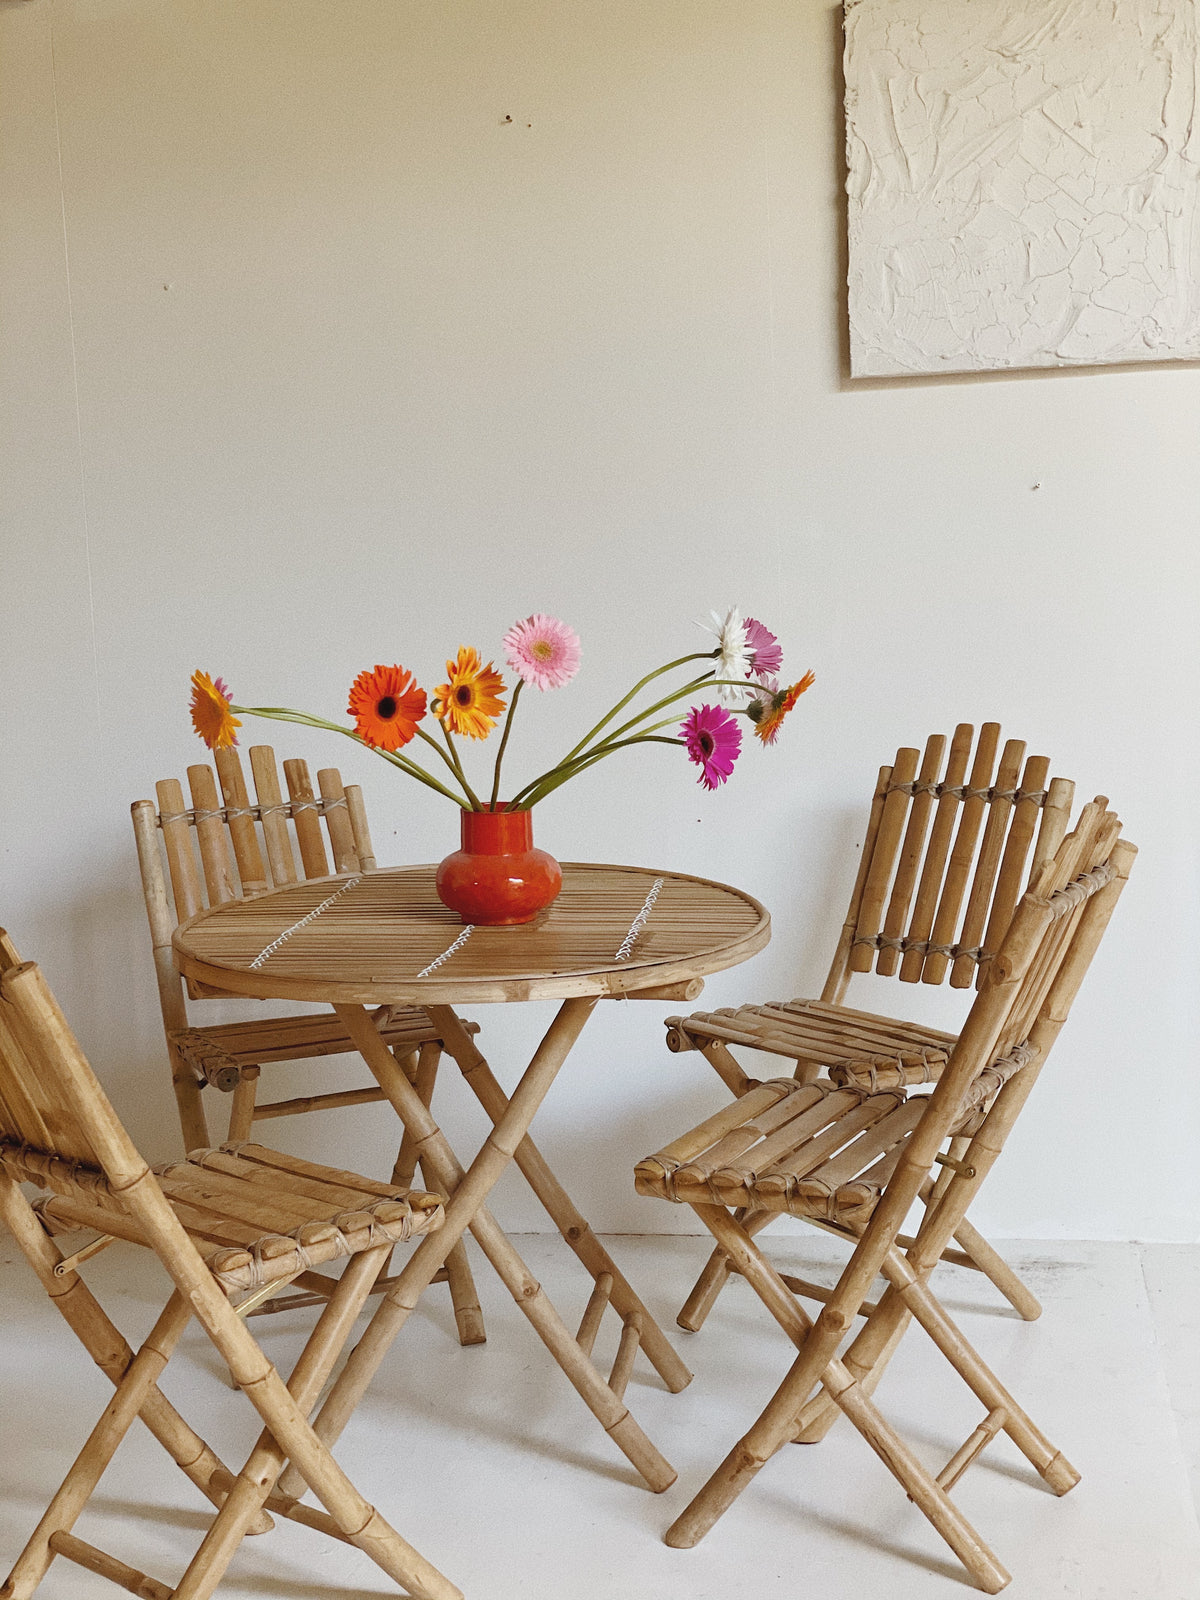 Vintage Bamboo Table and Folding Chairs